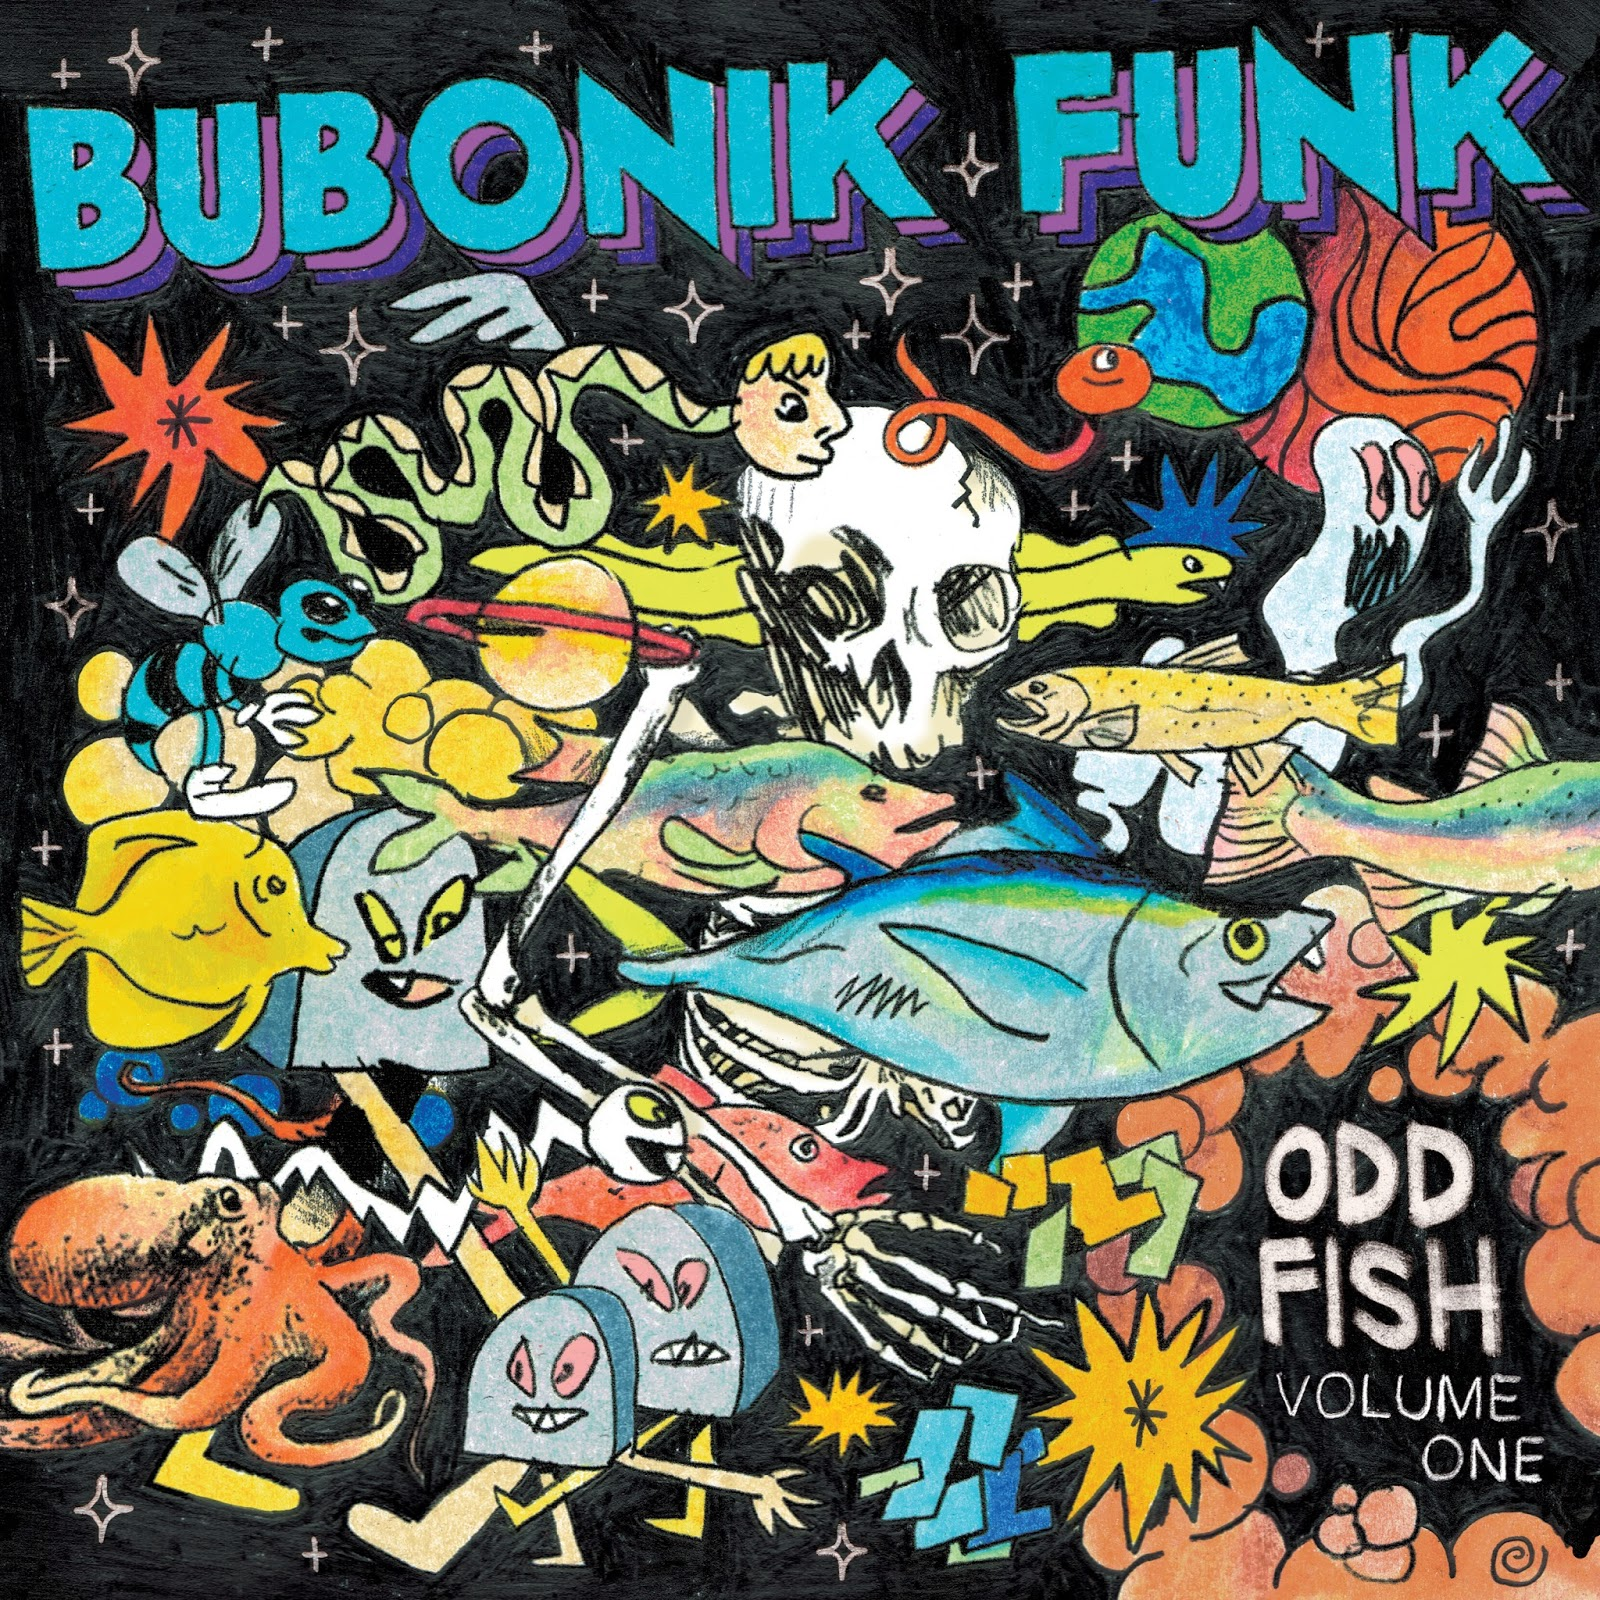 http://www.d4am.net/2014/06/bubonik-funk-odd-fish-vol-1.html